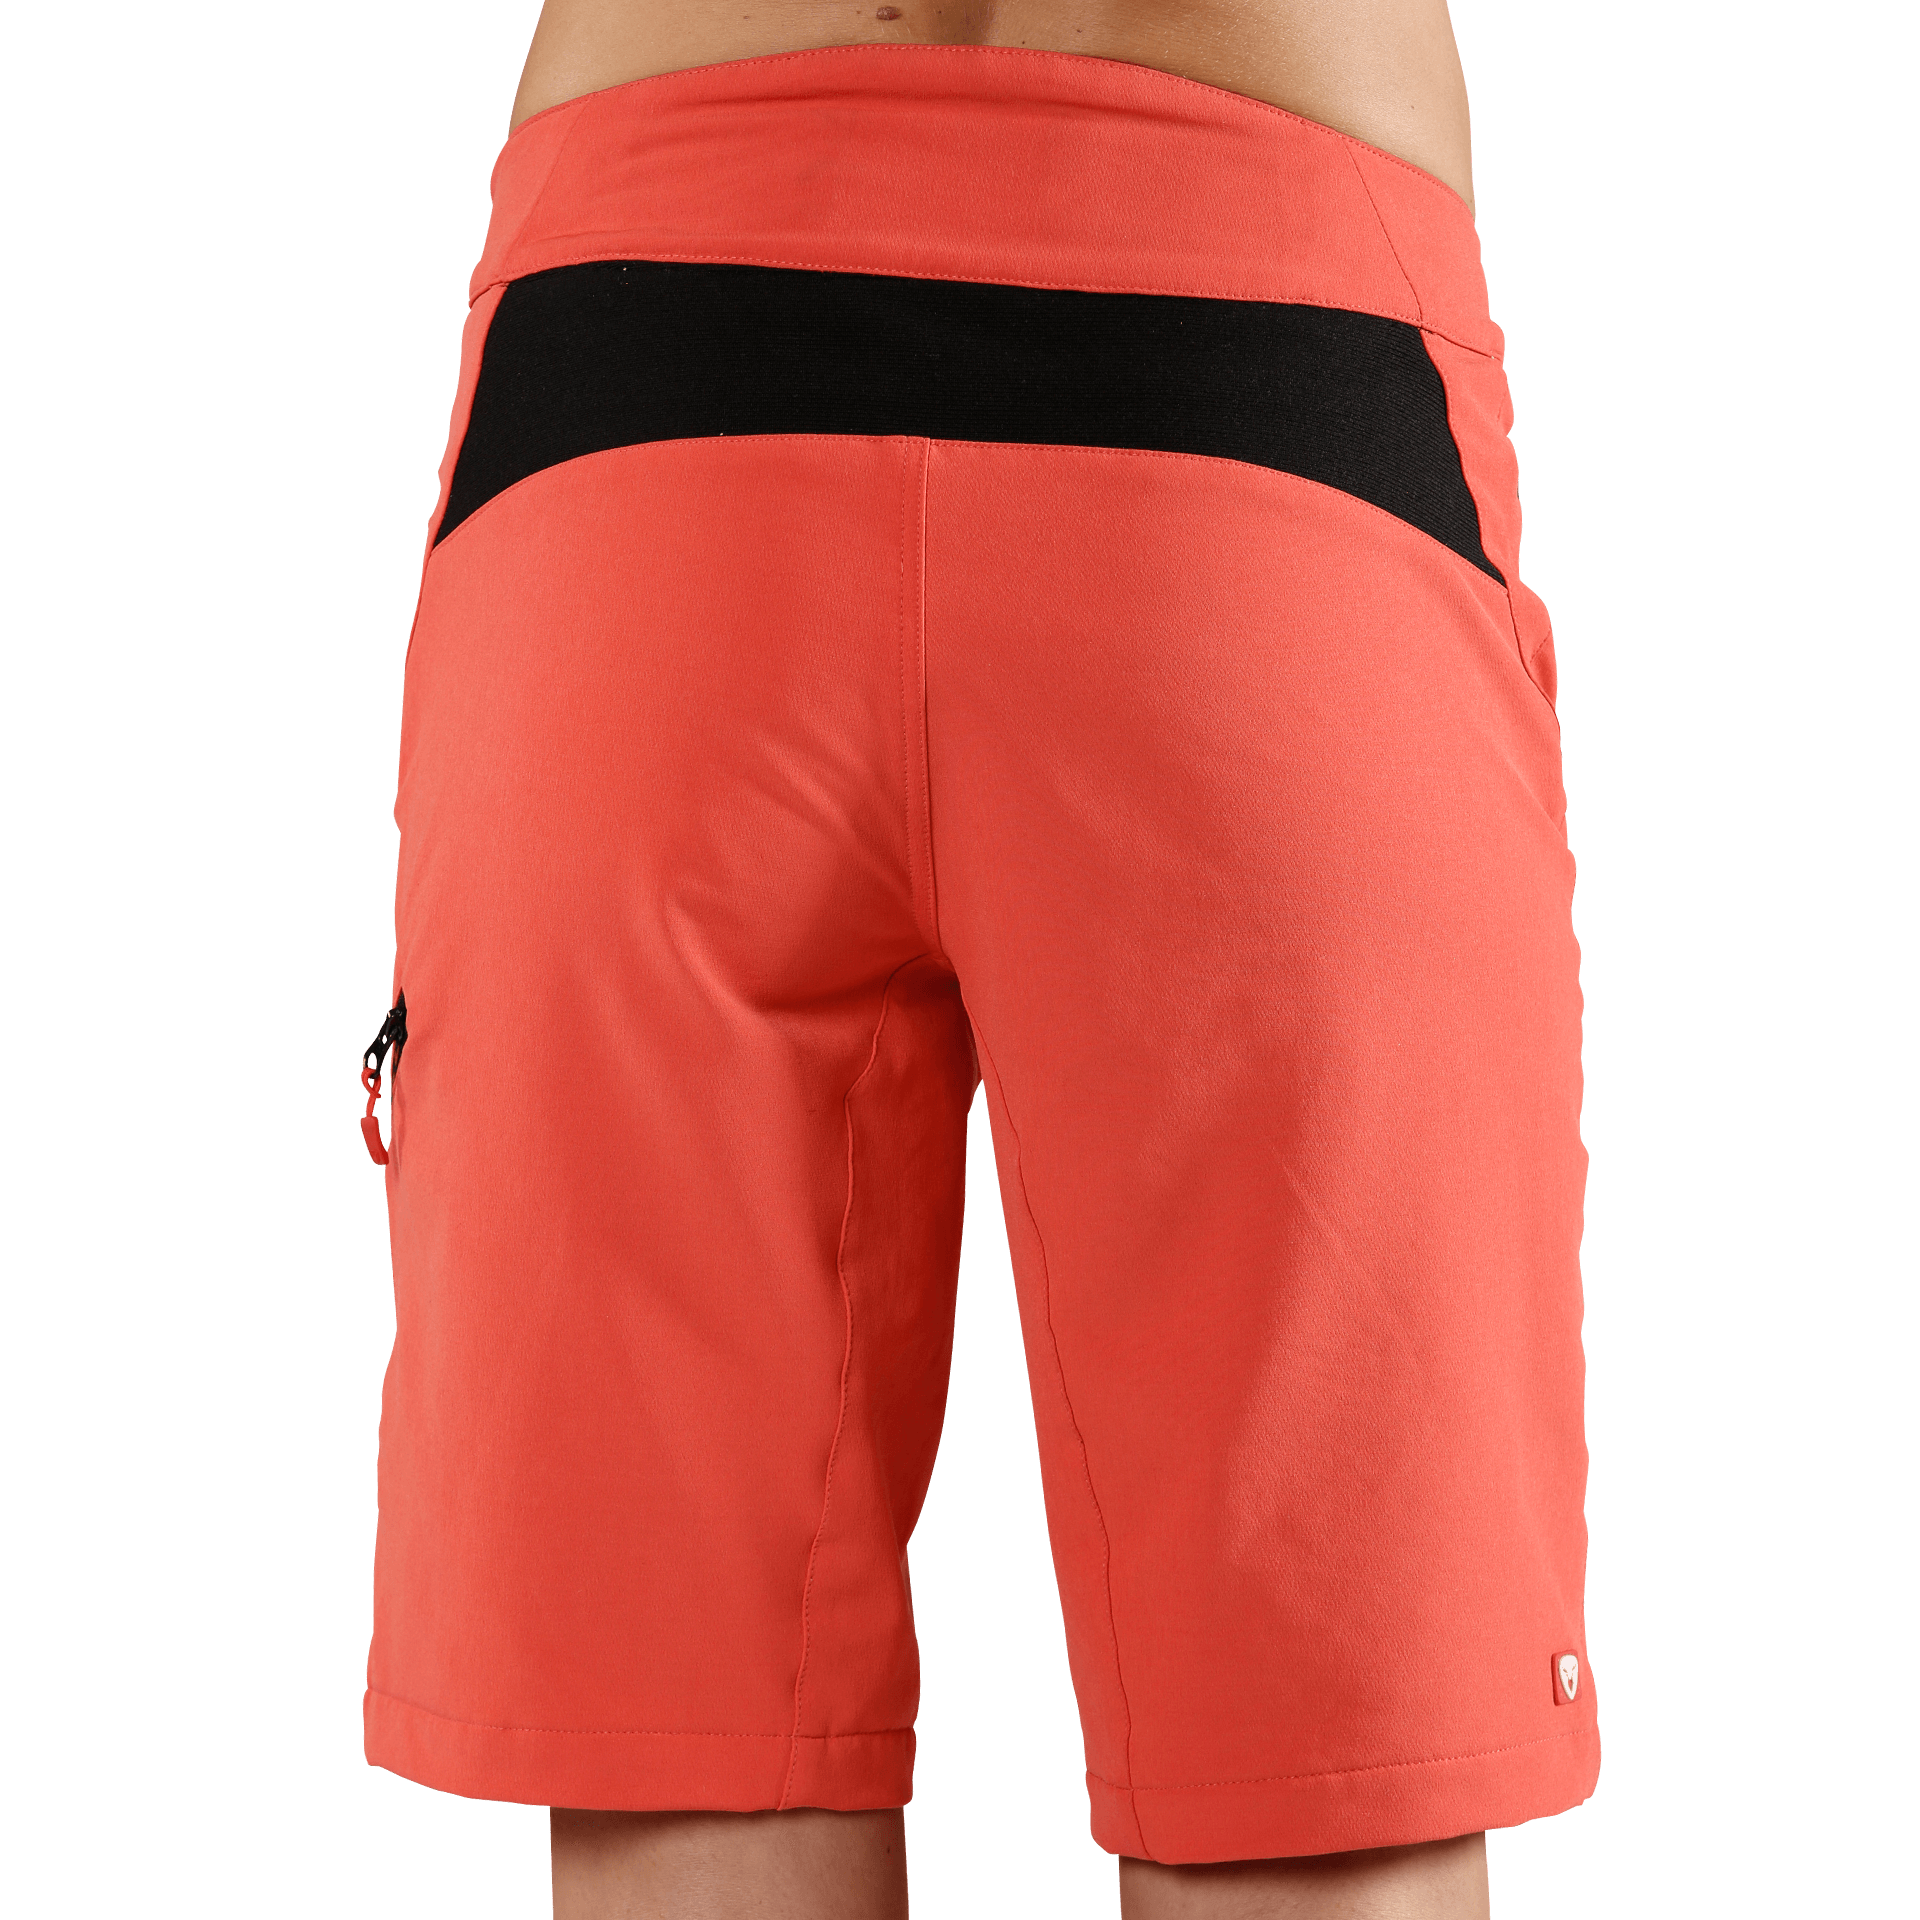 RCD TRAIL SHORT, HOT RED - hot red - XL - RCD TRAIL SHORT, HOT RED - hot red - XL